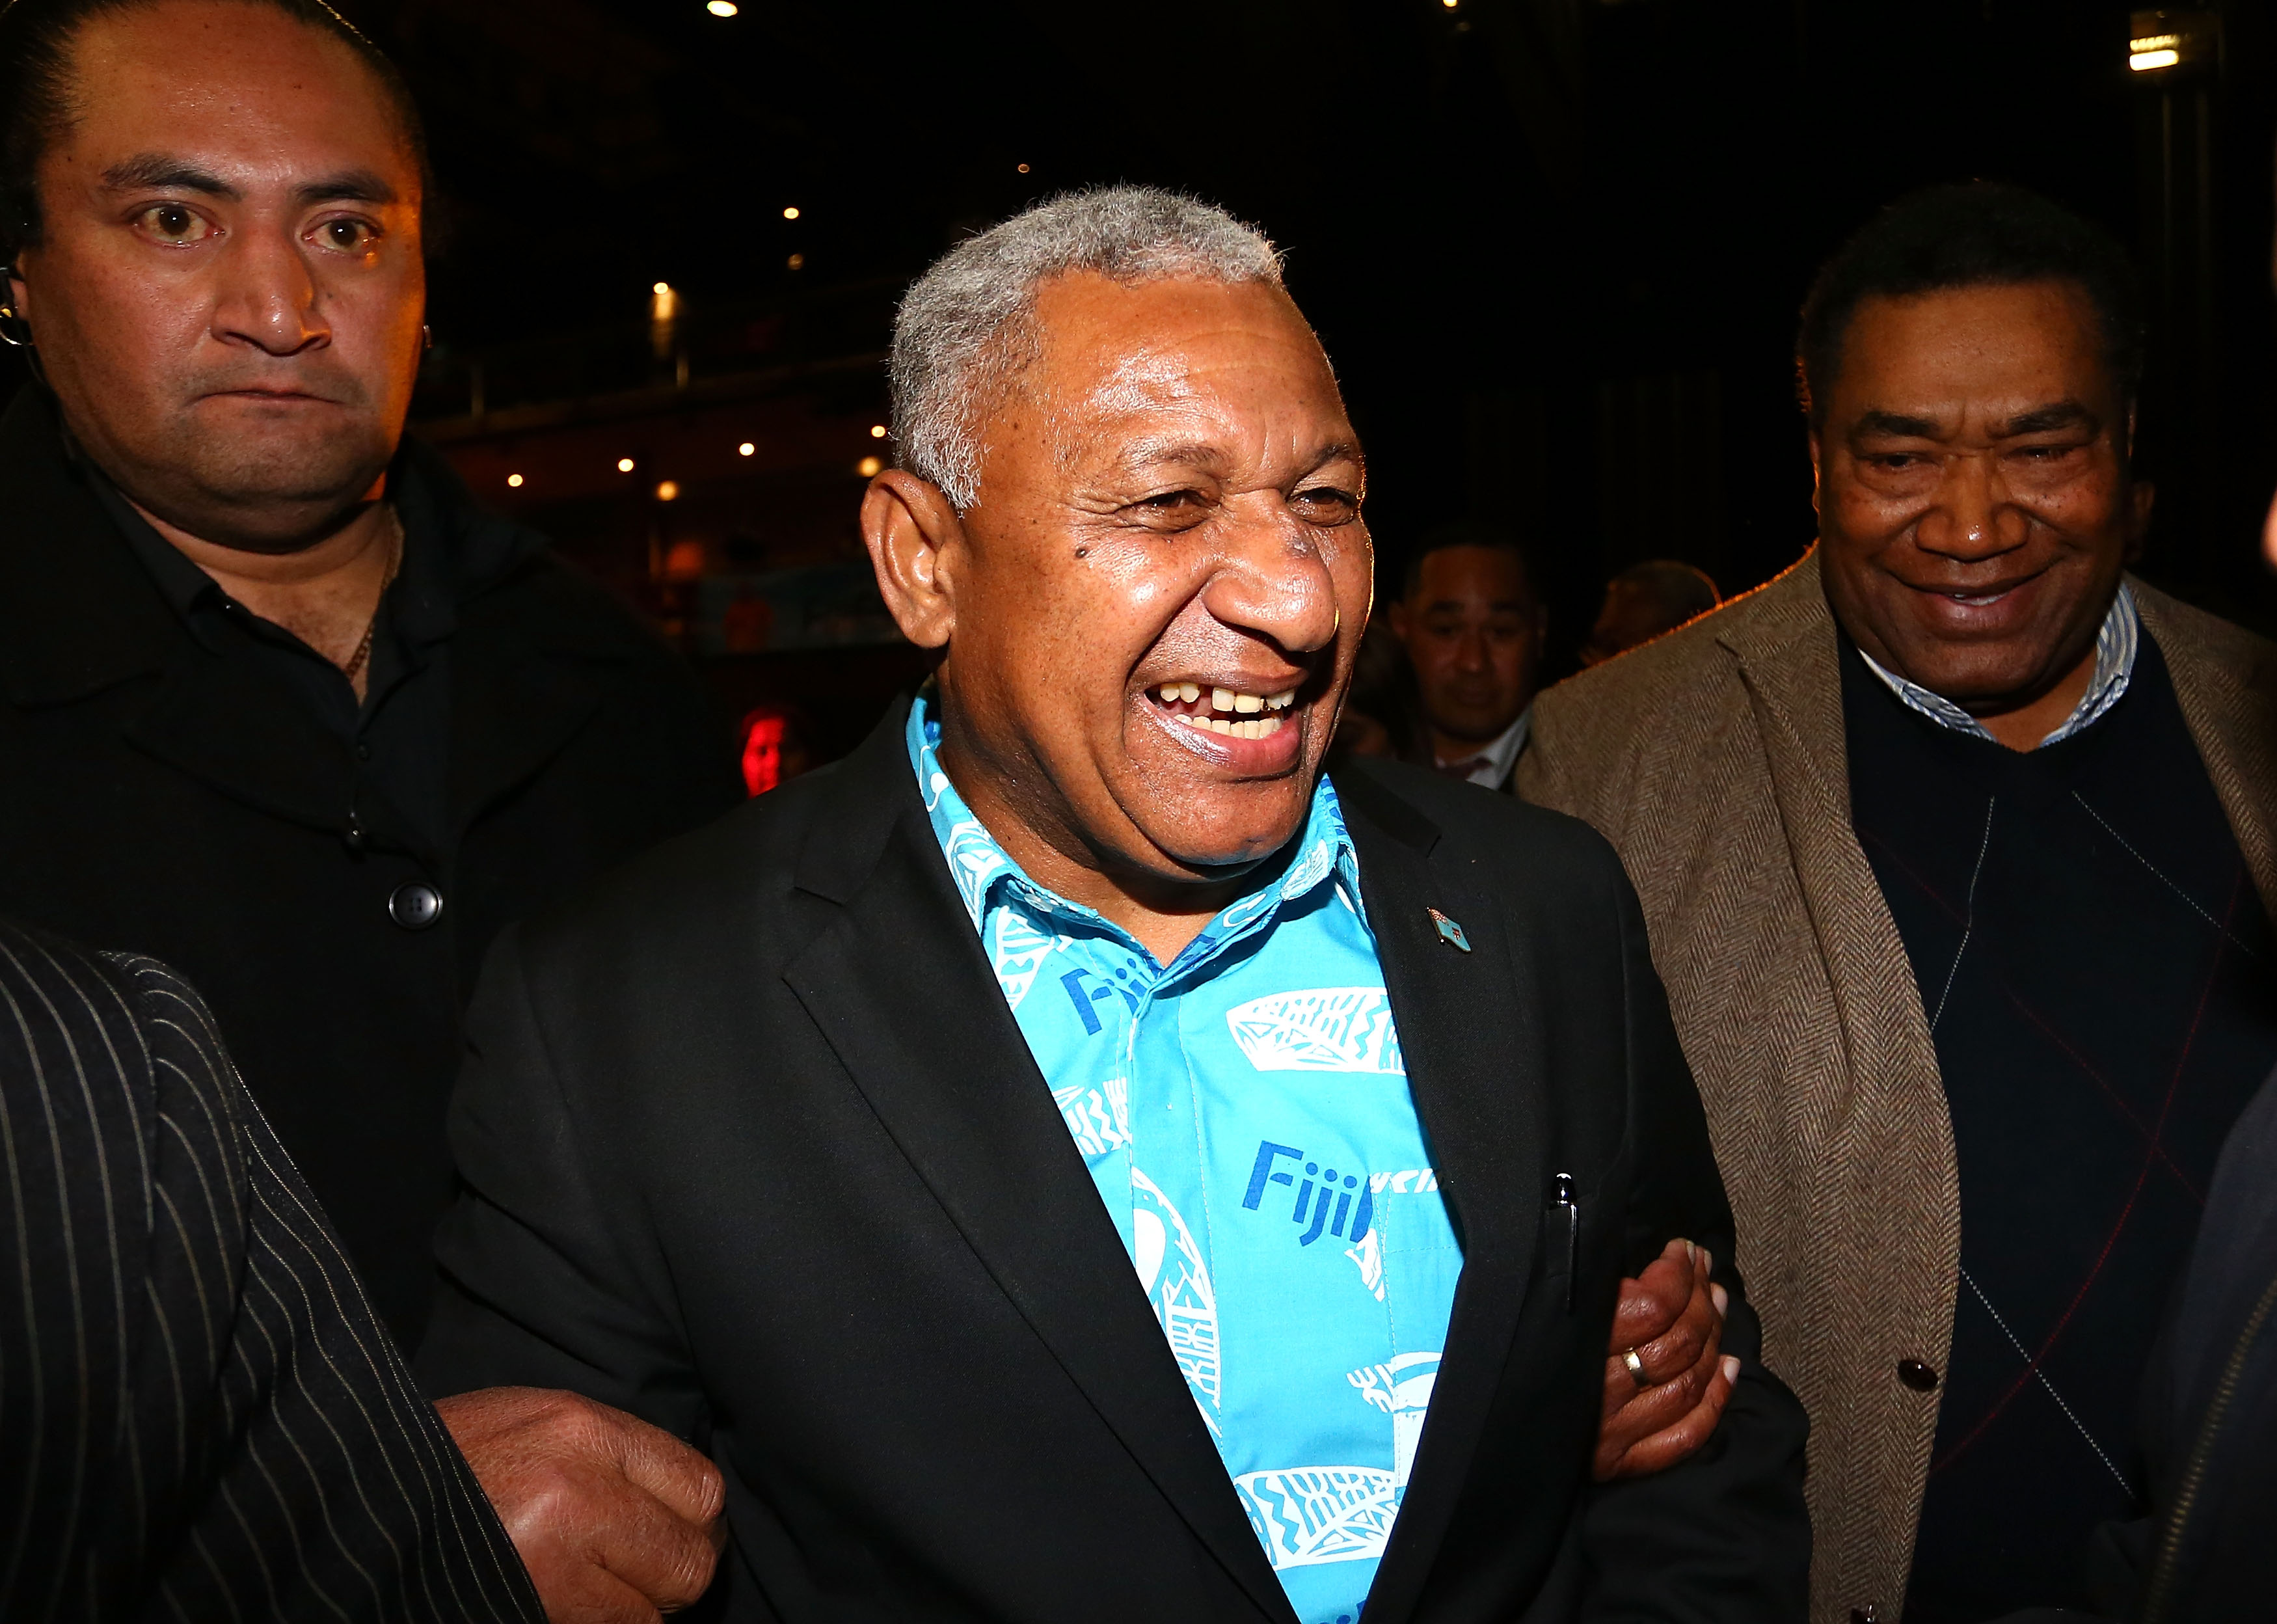 Fiji prime minister says he will never allow same-sex marriage